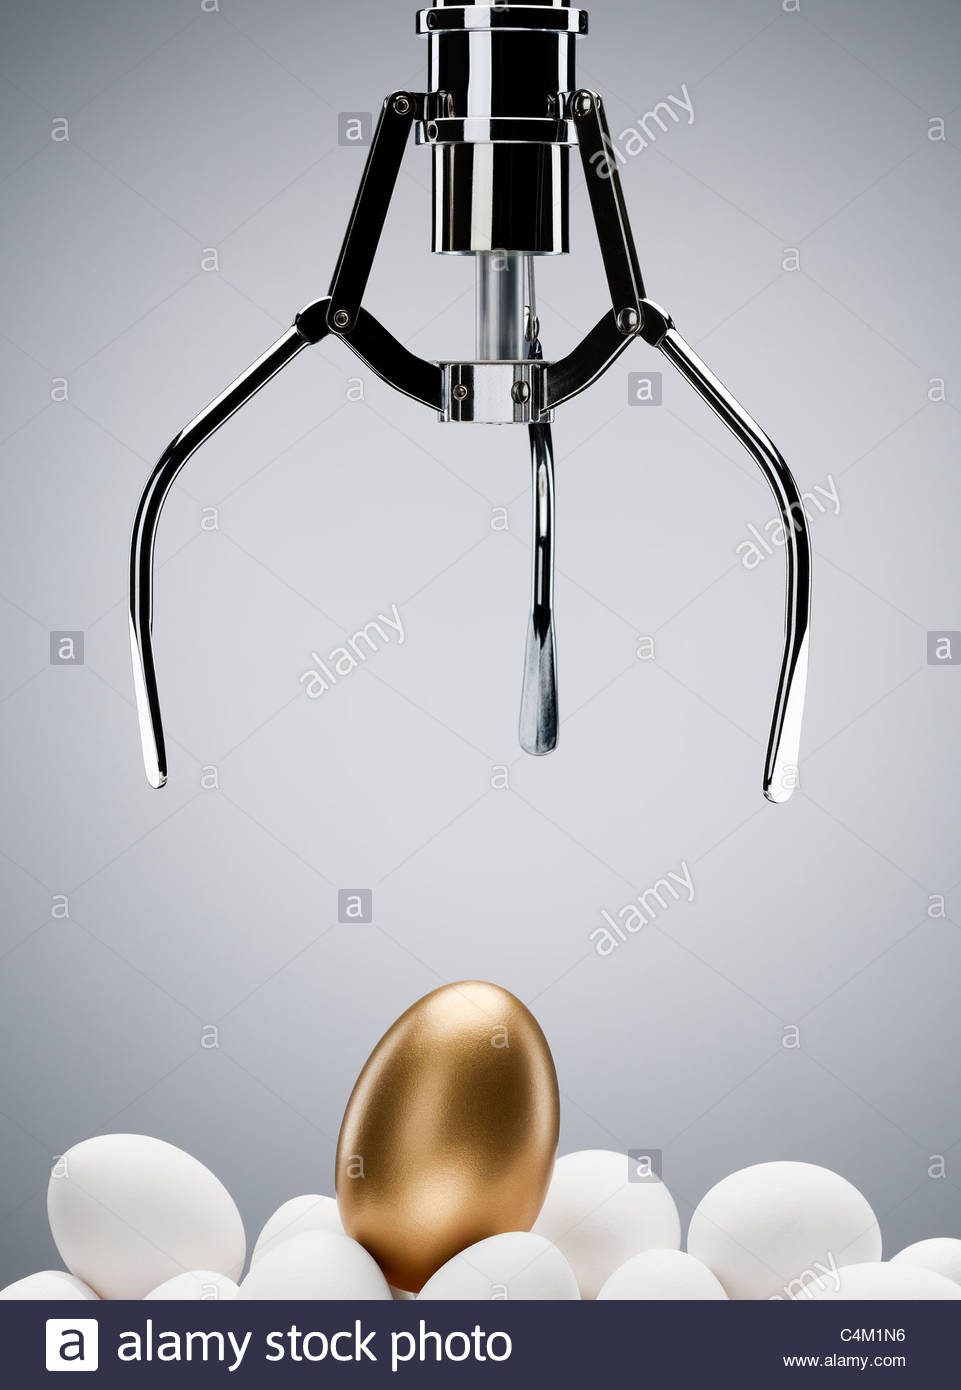 Mechanical claw reaching for golden egg - Stock Image